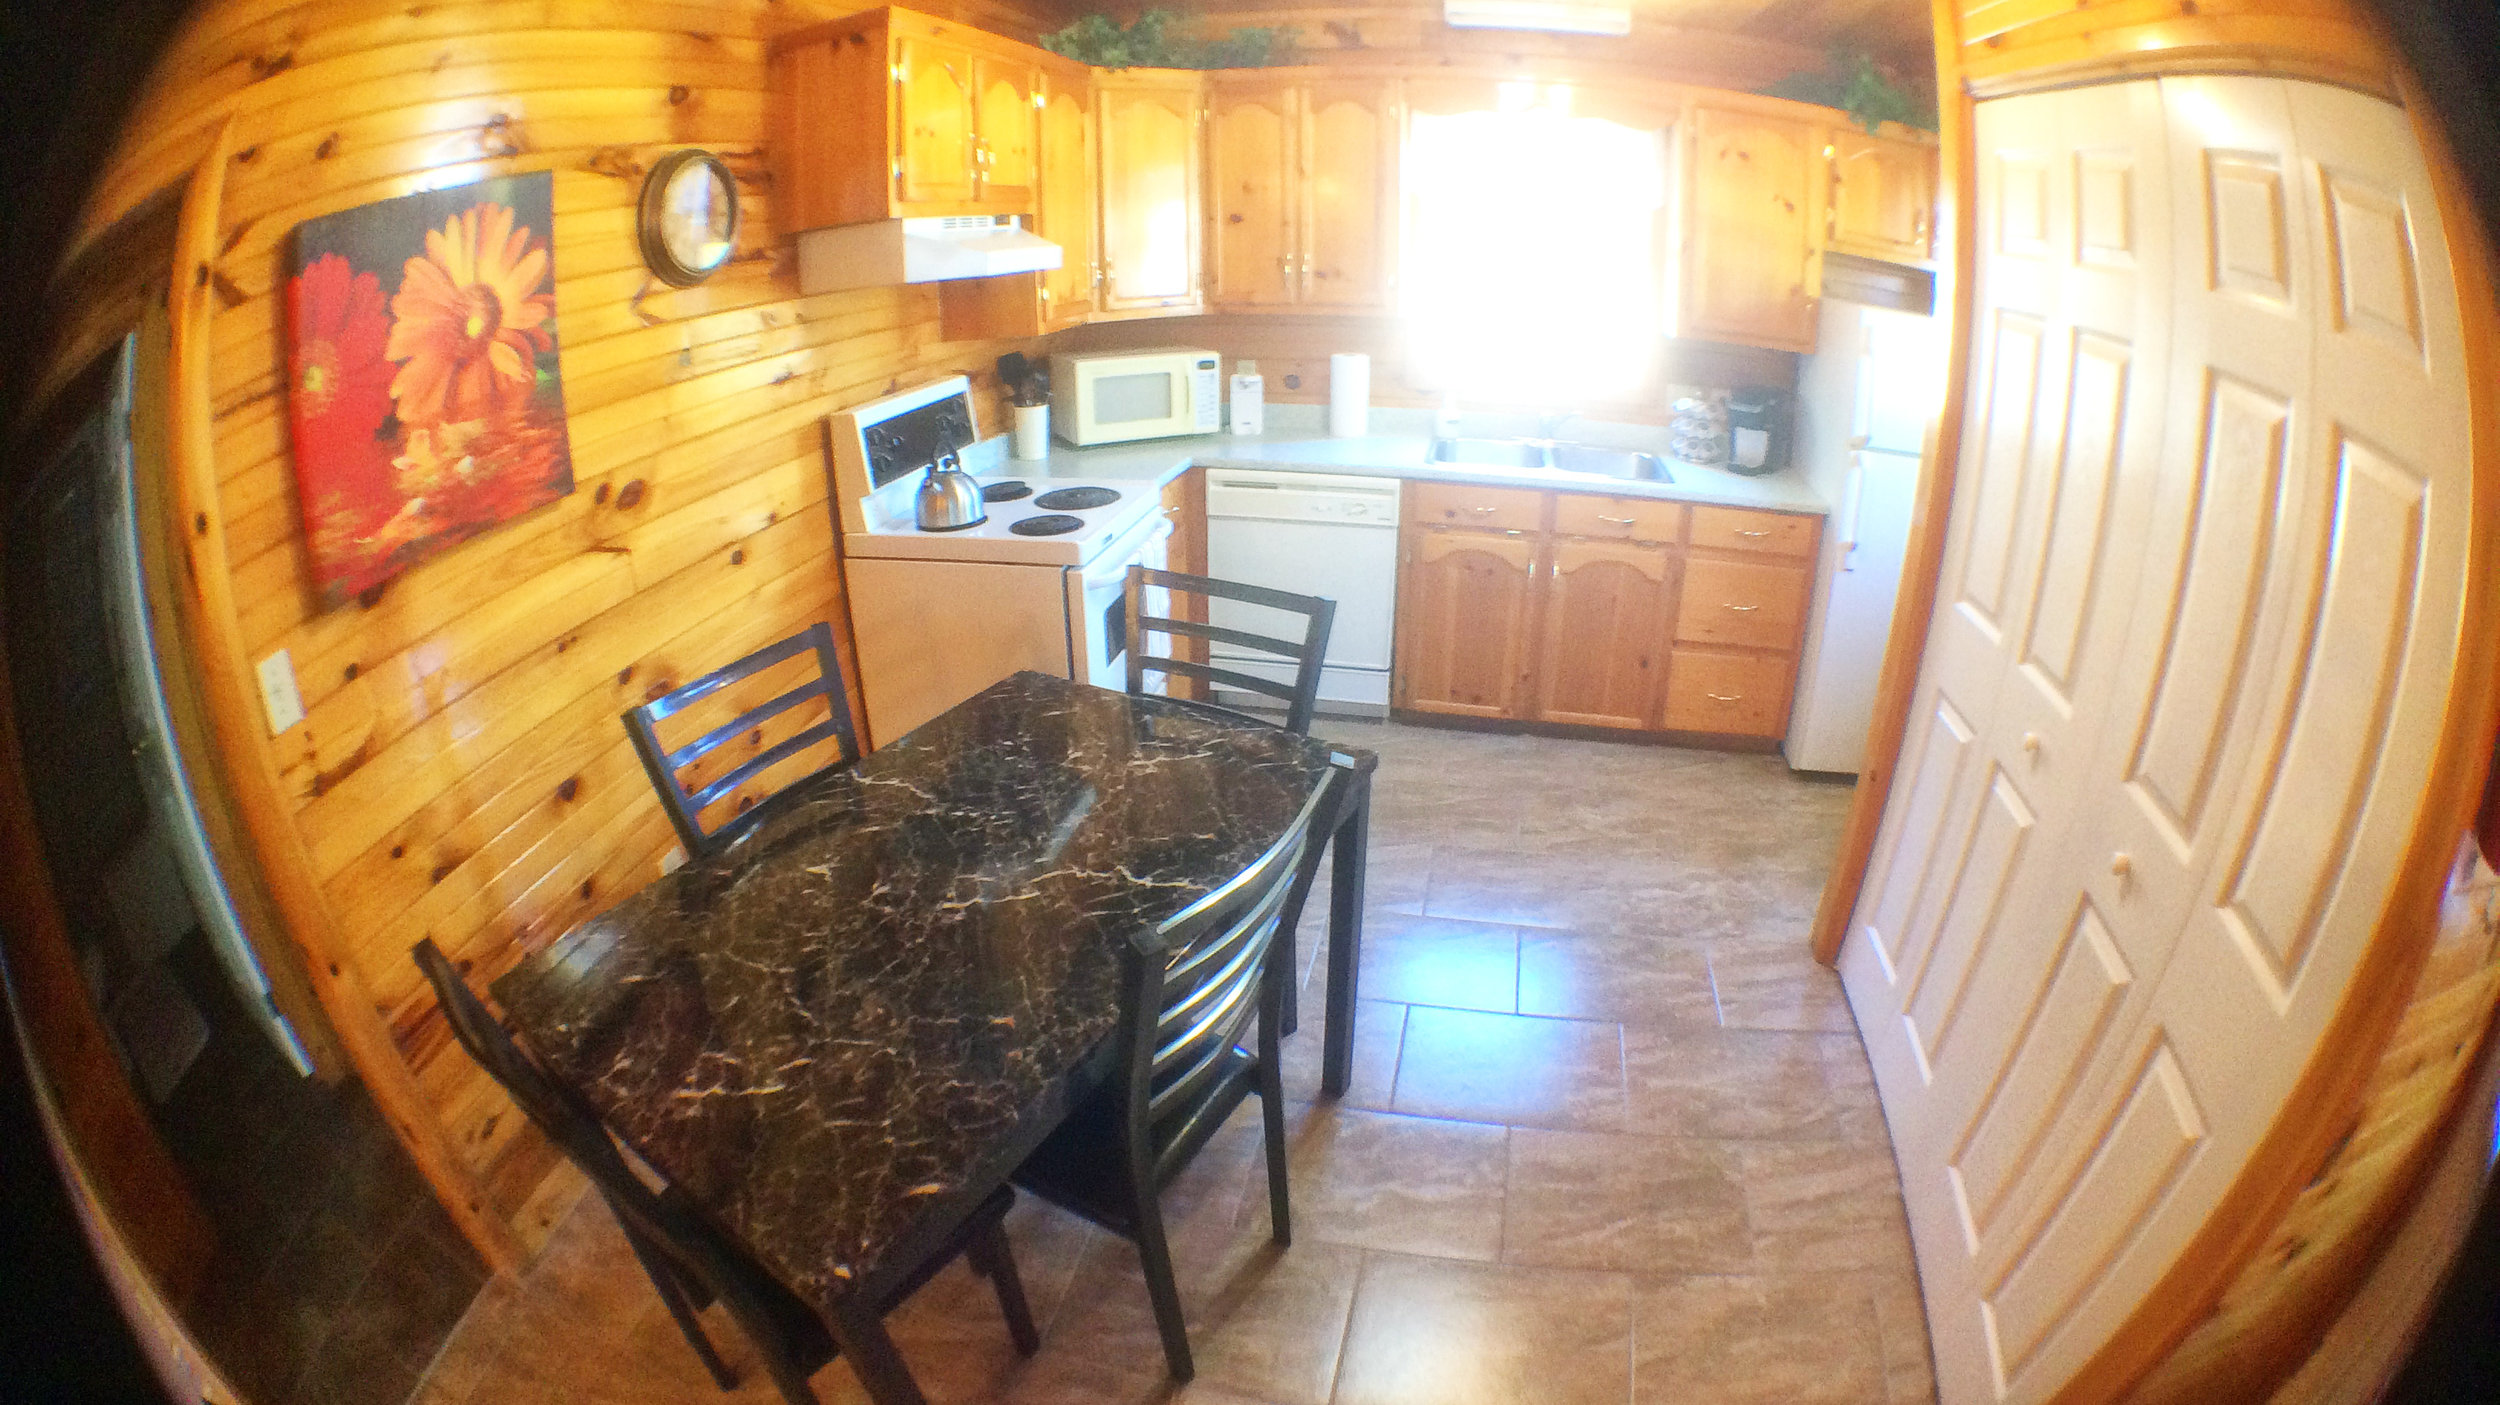 Full kitchen and dining area with seating for 4